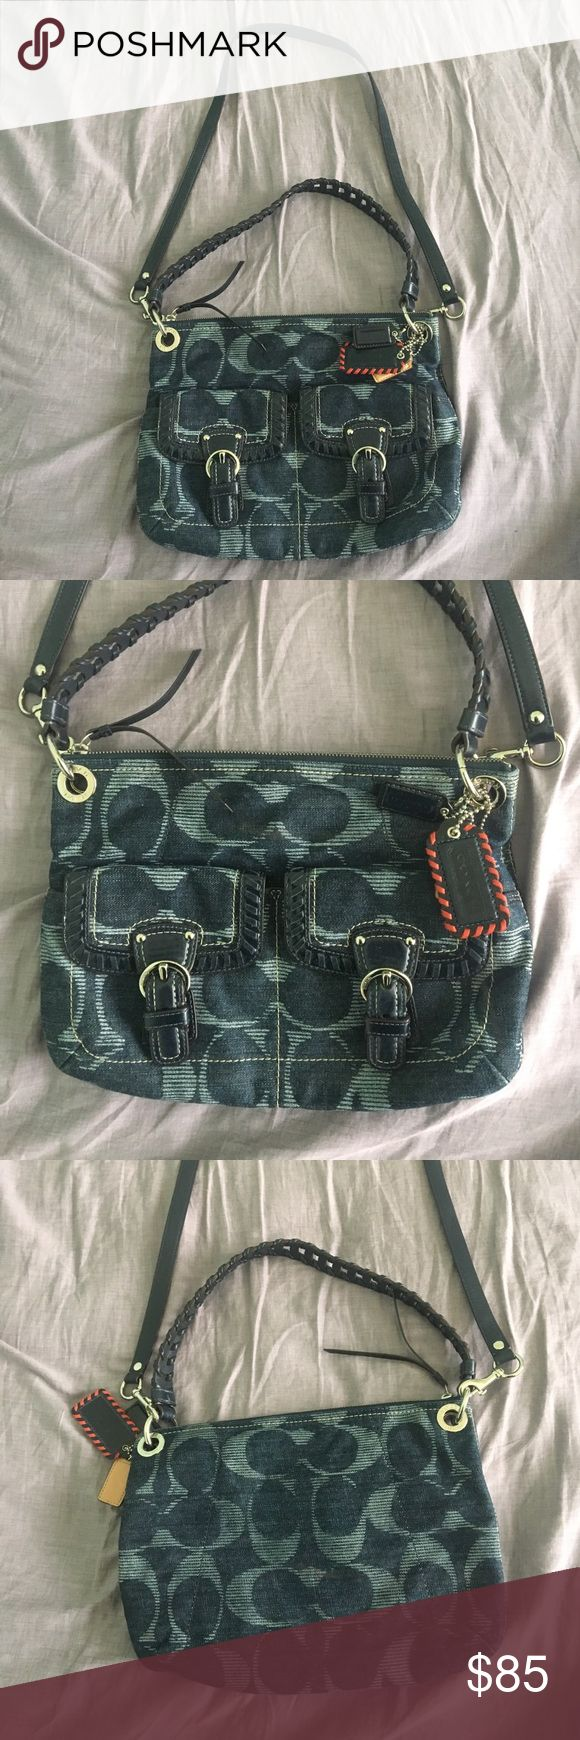 Authentic coach large crossbody bag Authentic large crossbody/messenger bag blue has a zipper, perfect condition, like new, no flaws Coach Bags Crossbody Bags